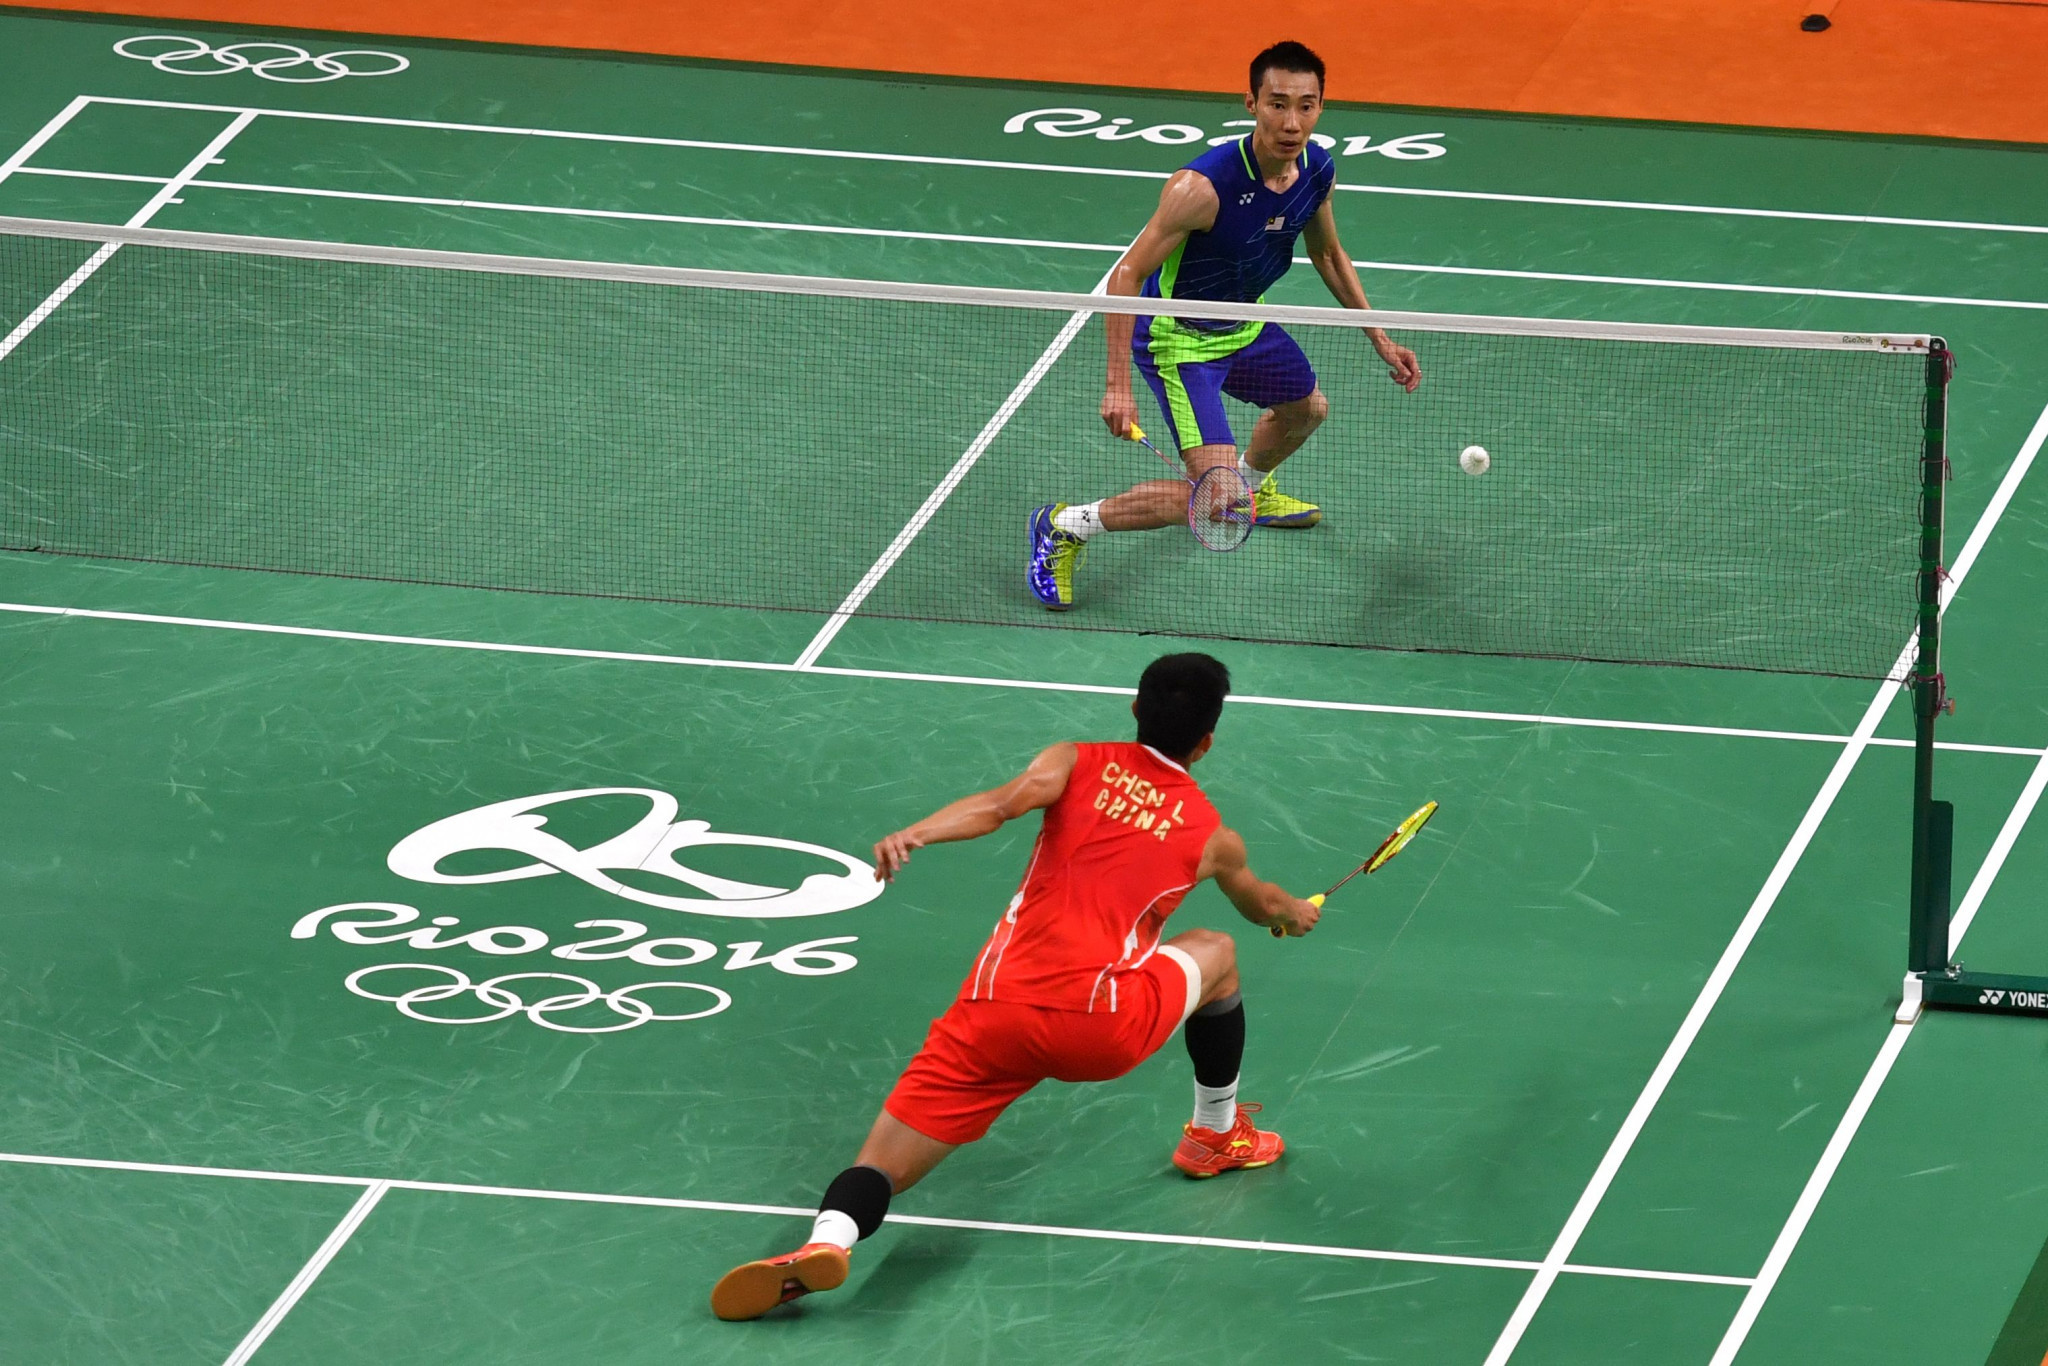 Badminton is among the sports that will benefit from the IOC's approach to dealing with coronavirus cases in competition at the Games ©Getty Images